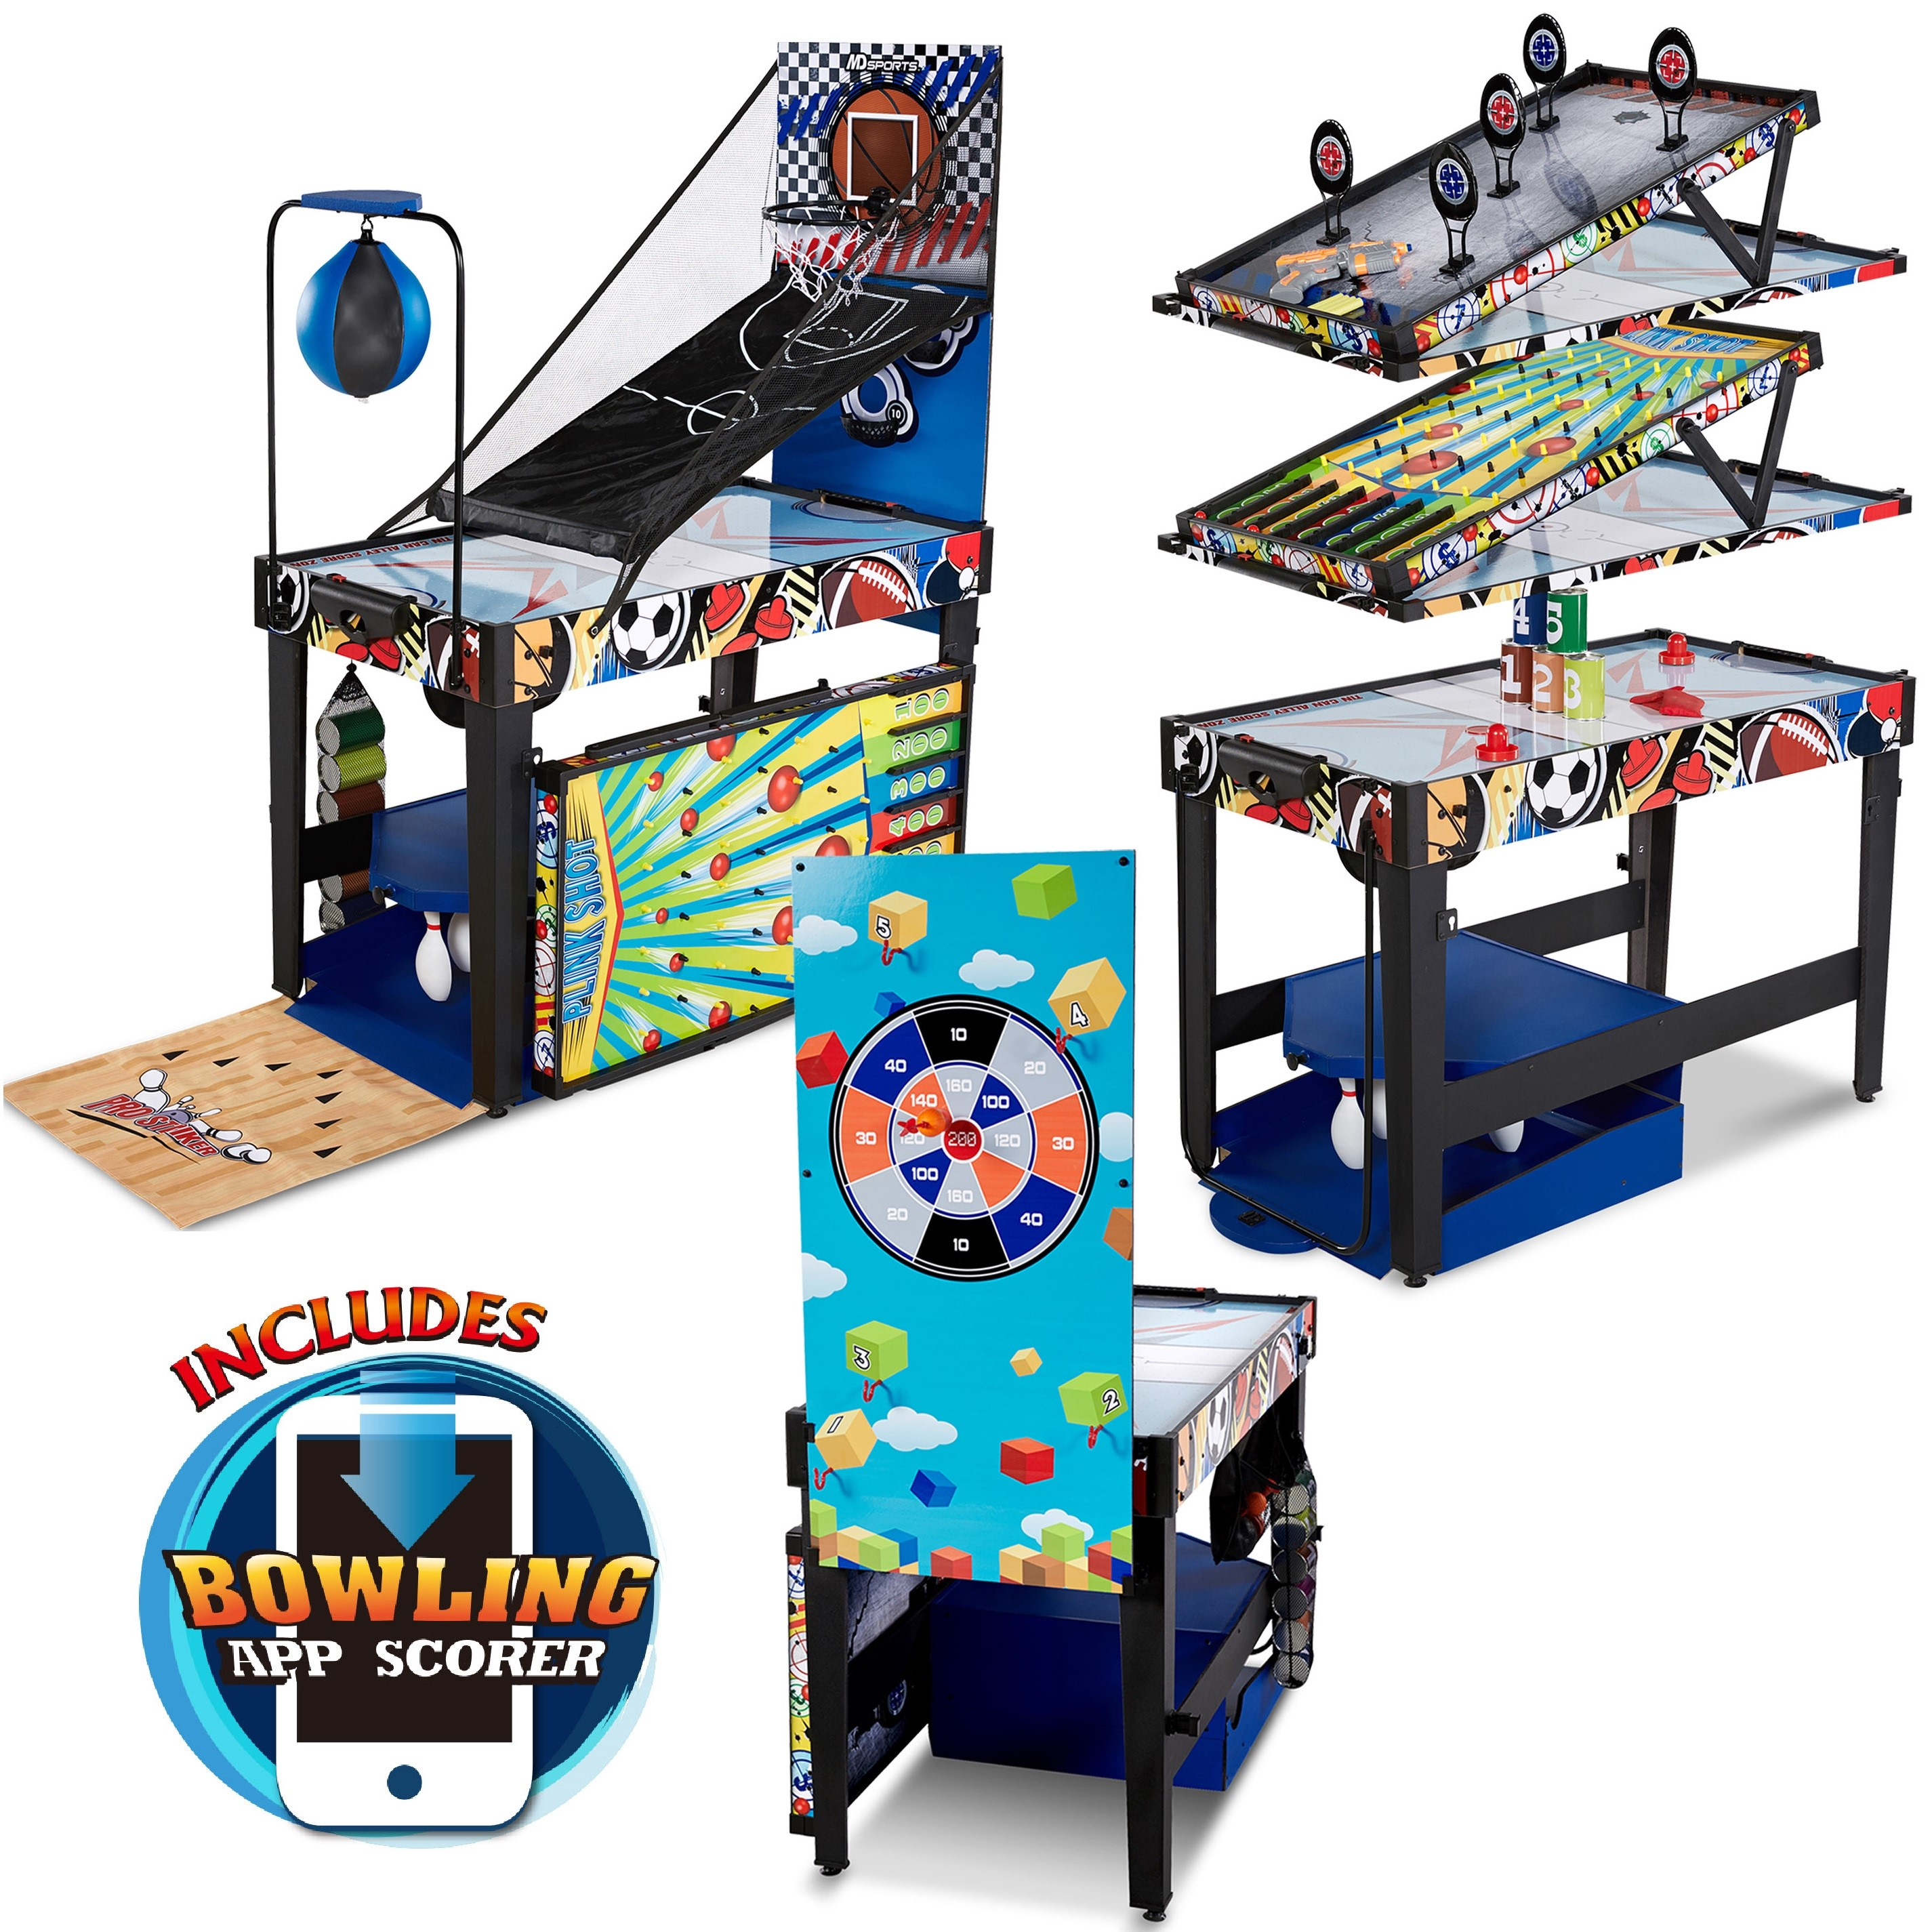 MD Sports 48 inch 12-in-1 Combo Multi-Game Table, Games with Air Powered Hockey, Basketball, Boxing, Target Shooting, Bean Bag Toss, Bowling with APP Scorer